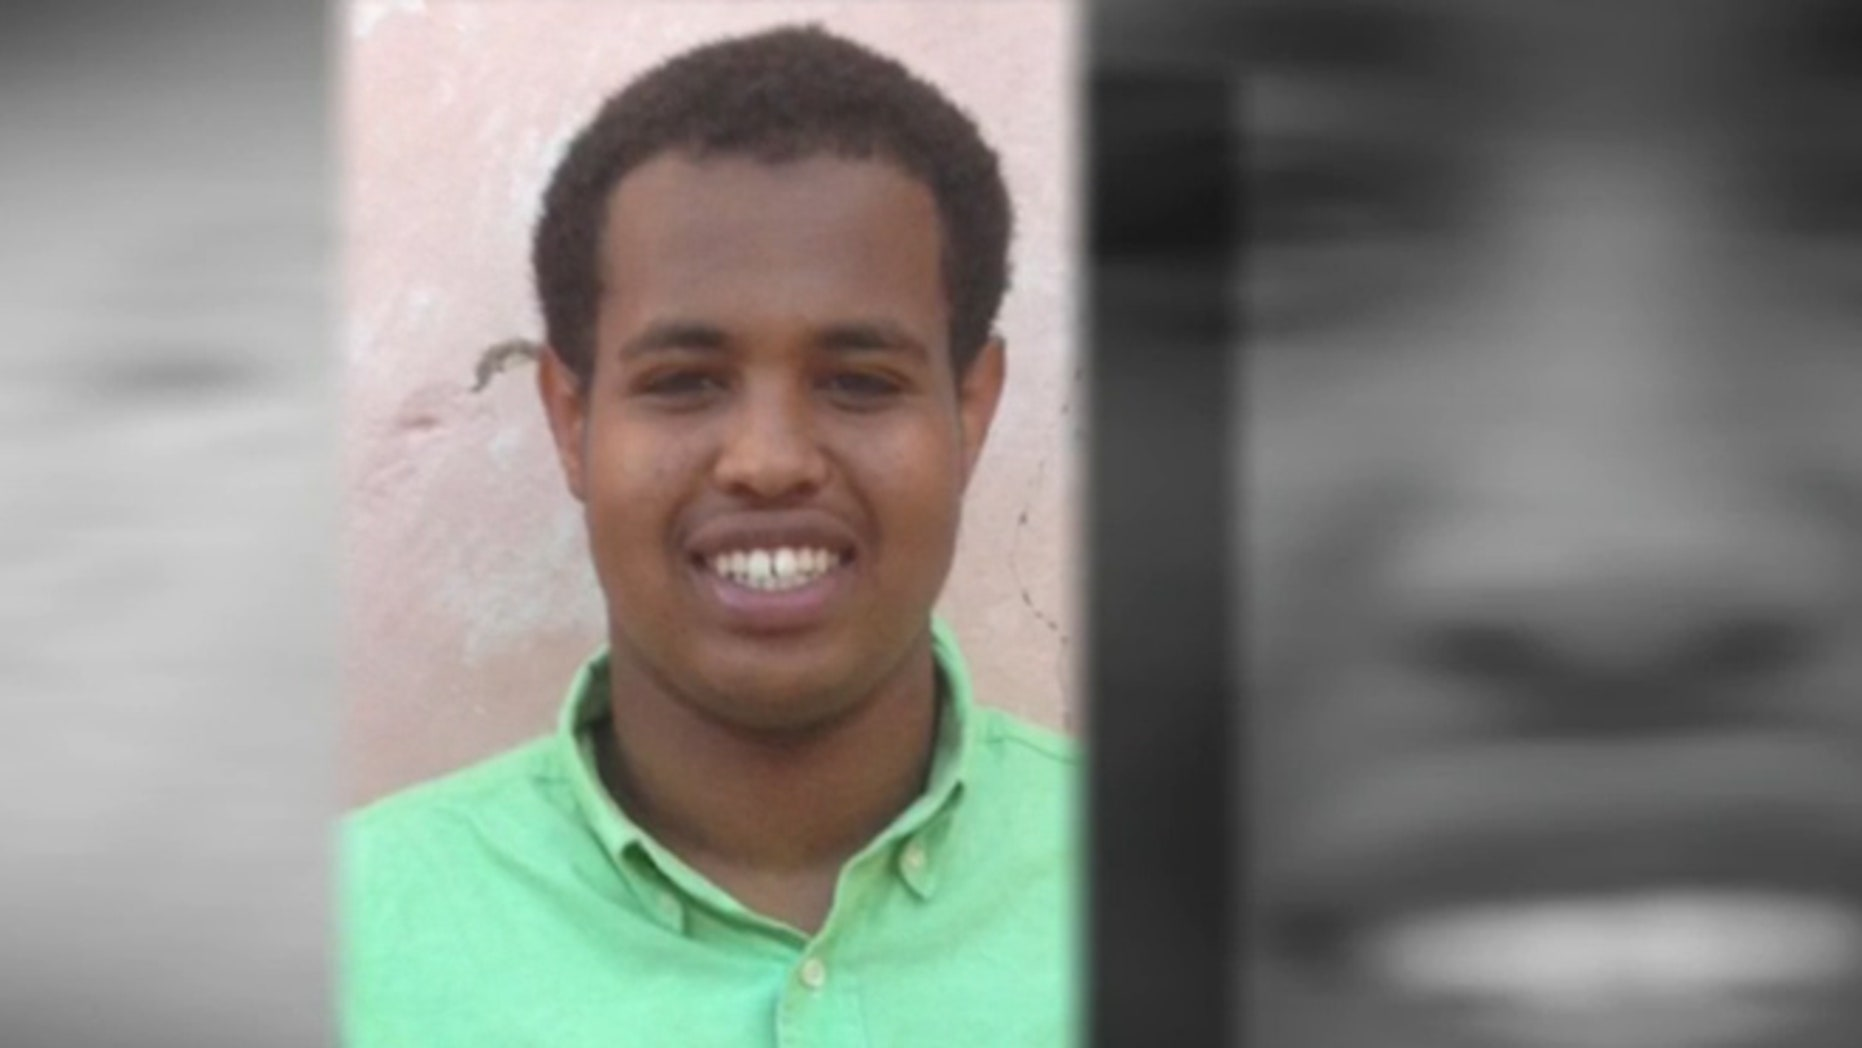 Ammar Abdirahman died in Somalia after being sent there to attend school.